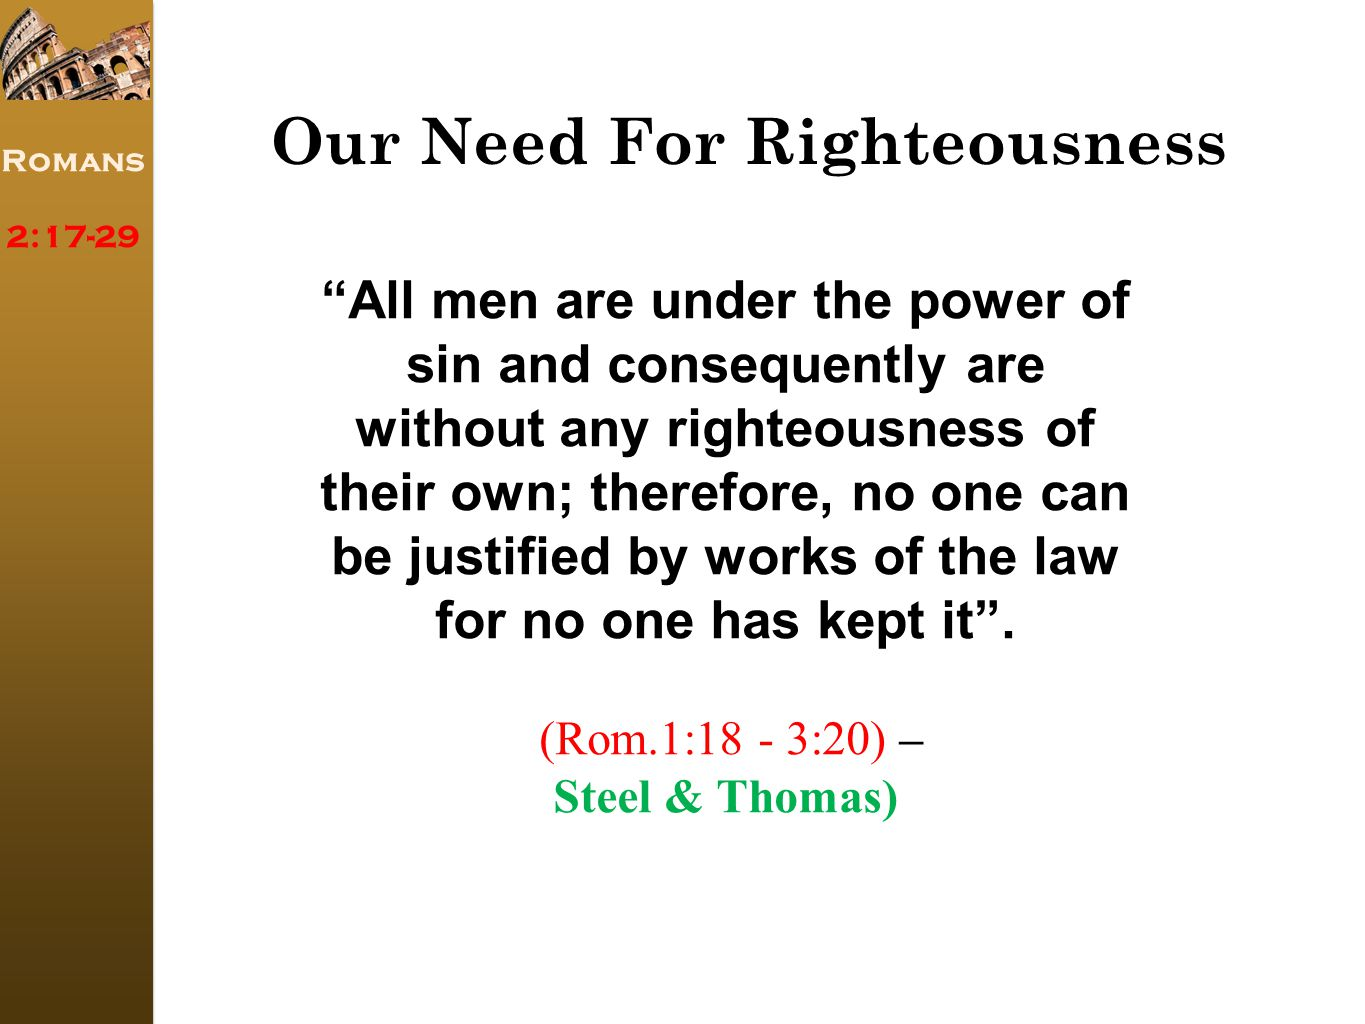 Romans 2:17-29 All men are under the power of sin and consequently are without any righteousness of their own; therefore, no one can be justified by works of the law for no one has kept it .